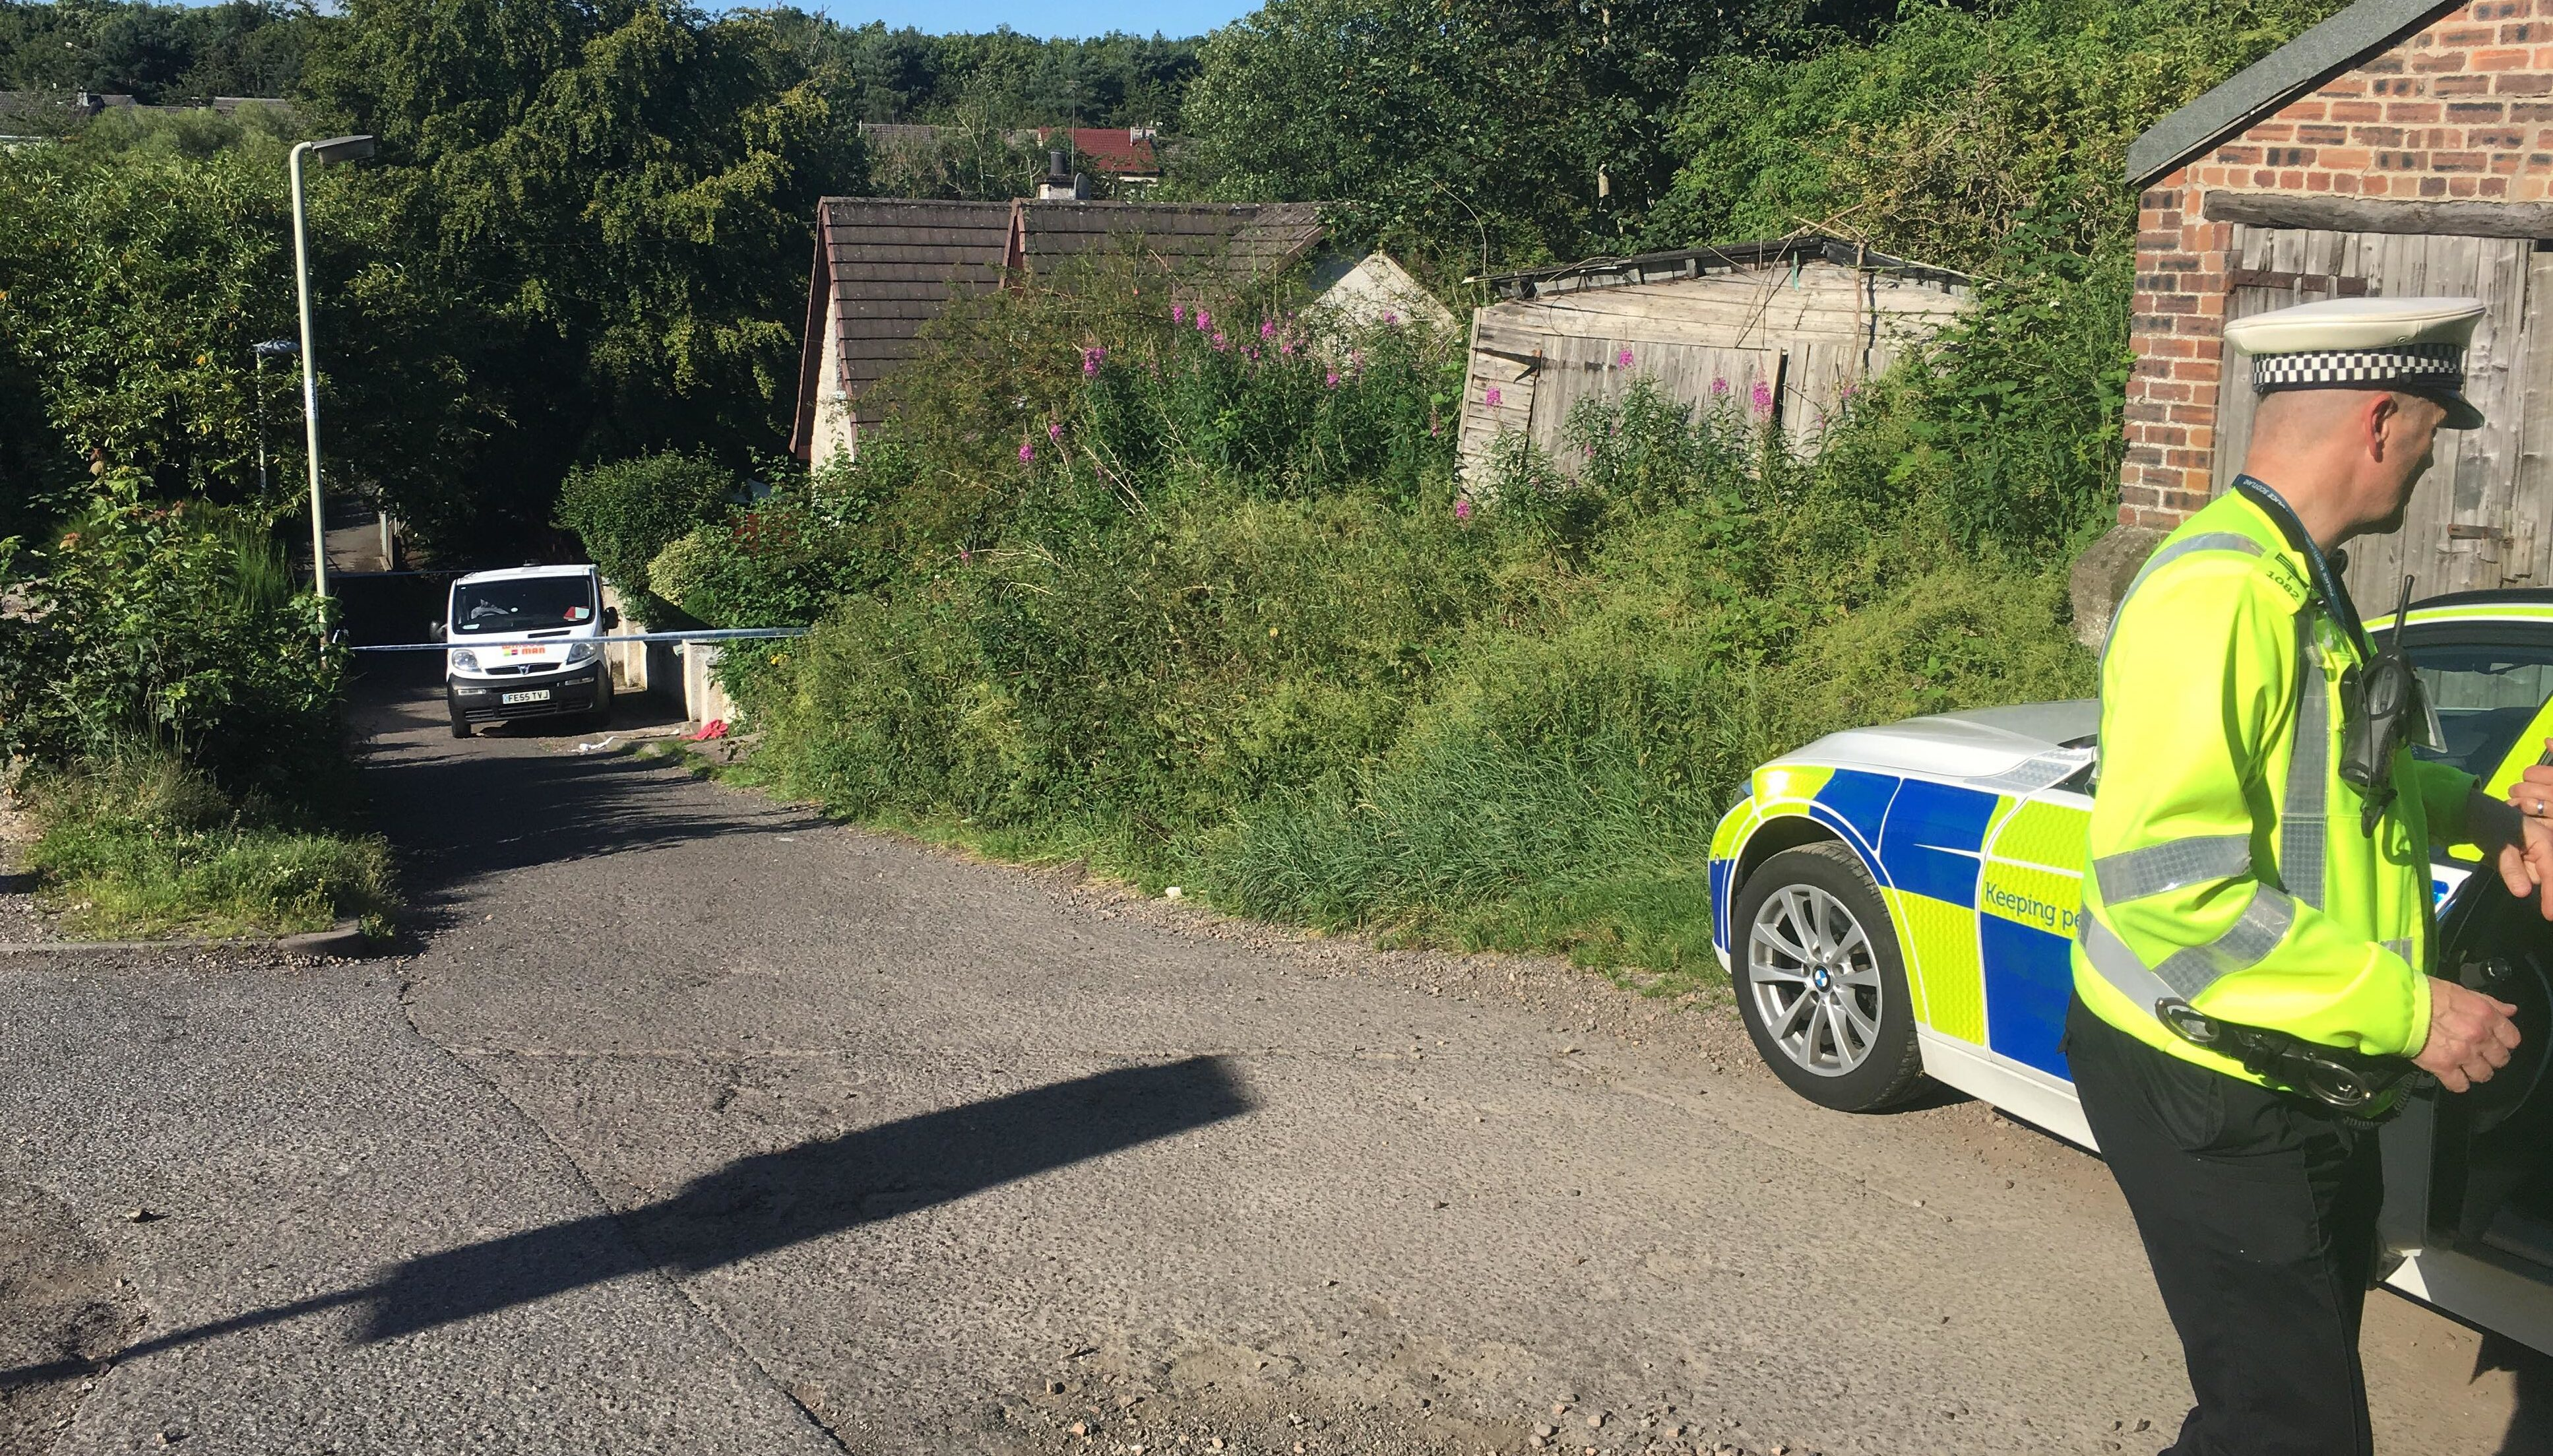 The scene of the incident in Invergowrie.